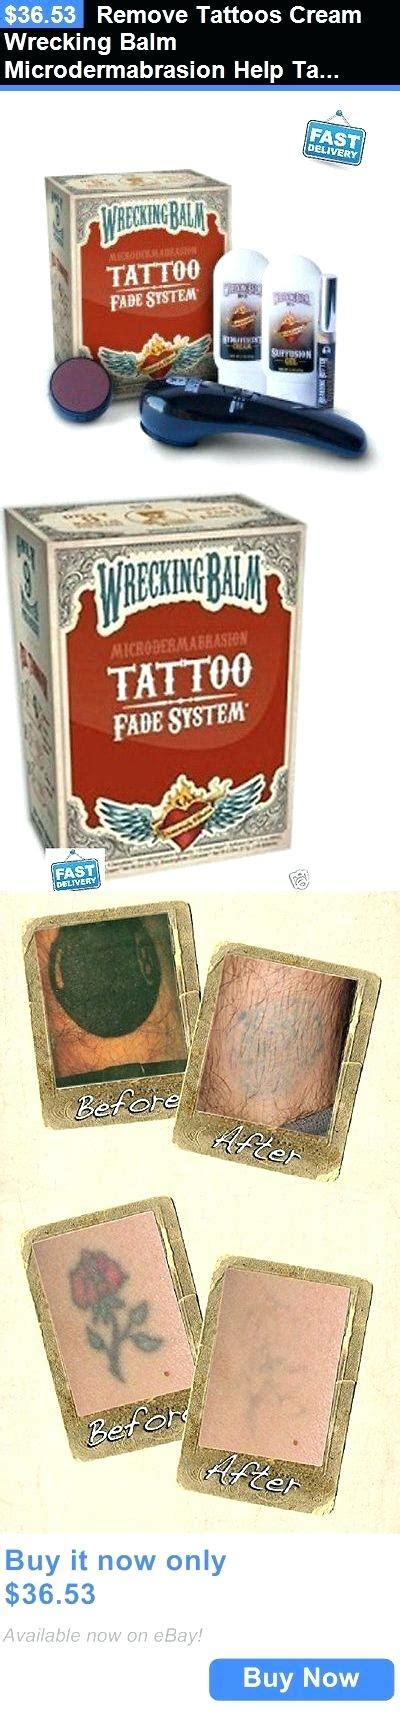 tattoo removal walmart unique s wrecking balm tattoo removal cream reviews